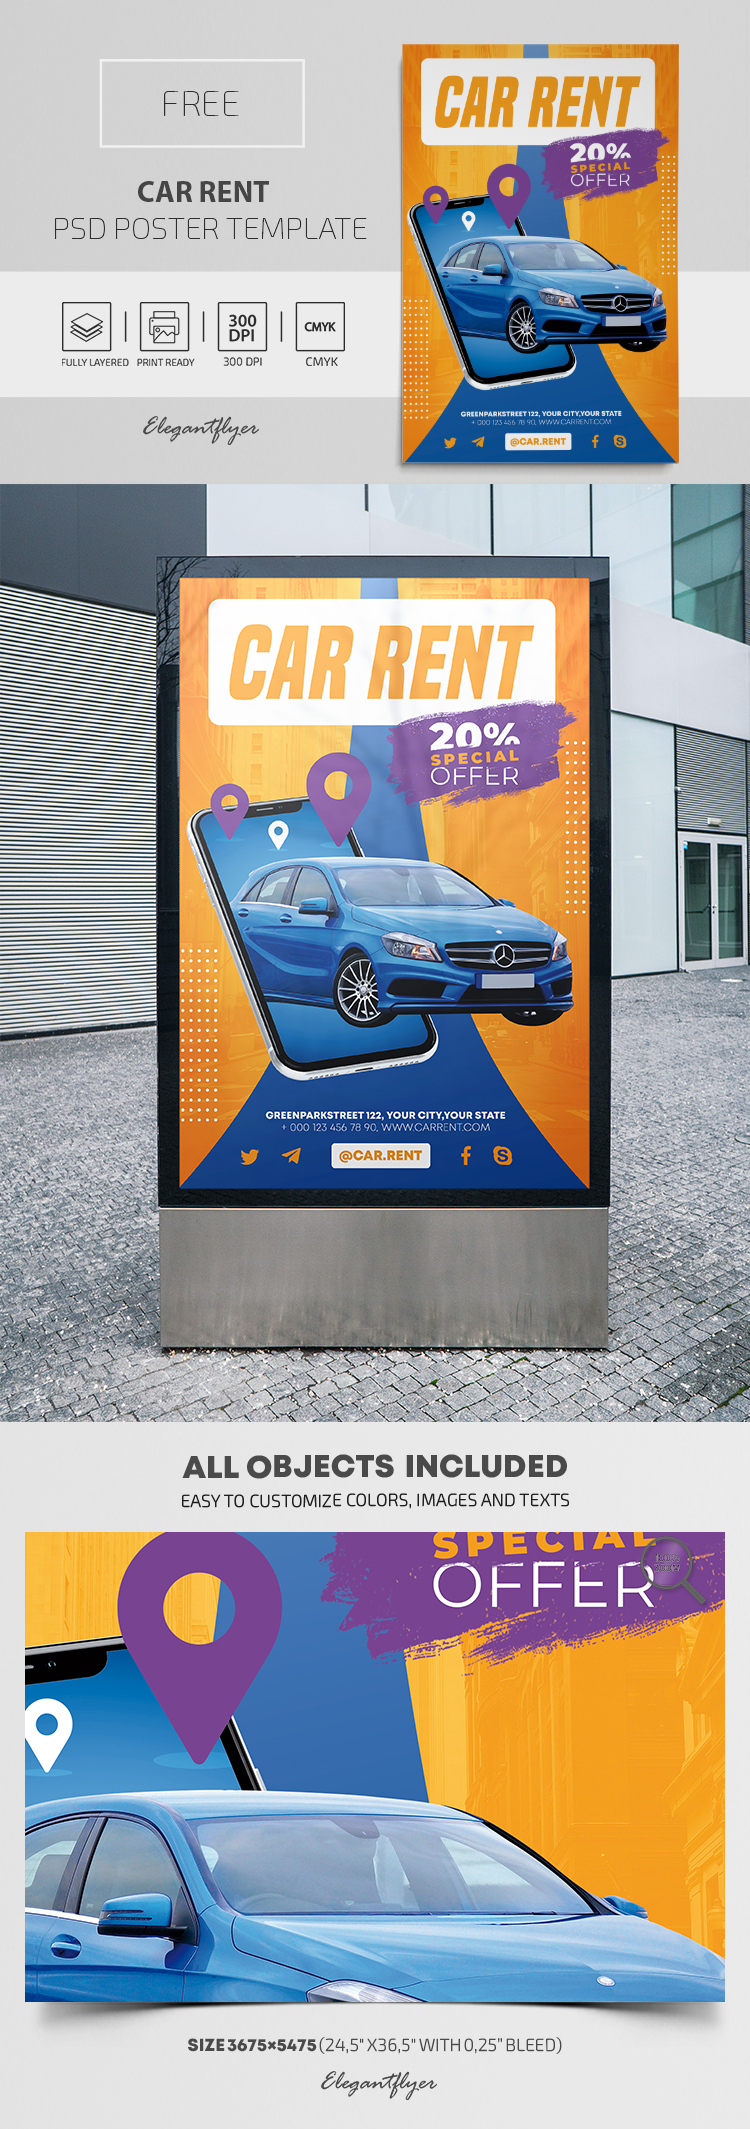 Car Rent – Free PSD Poster Template